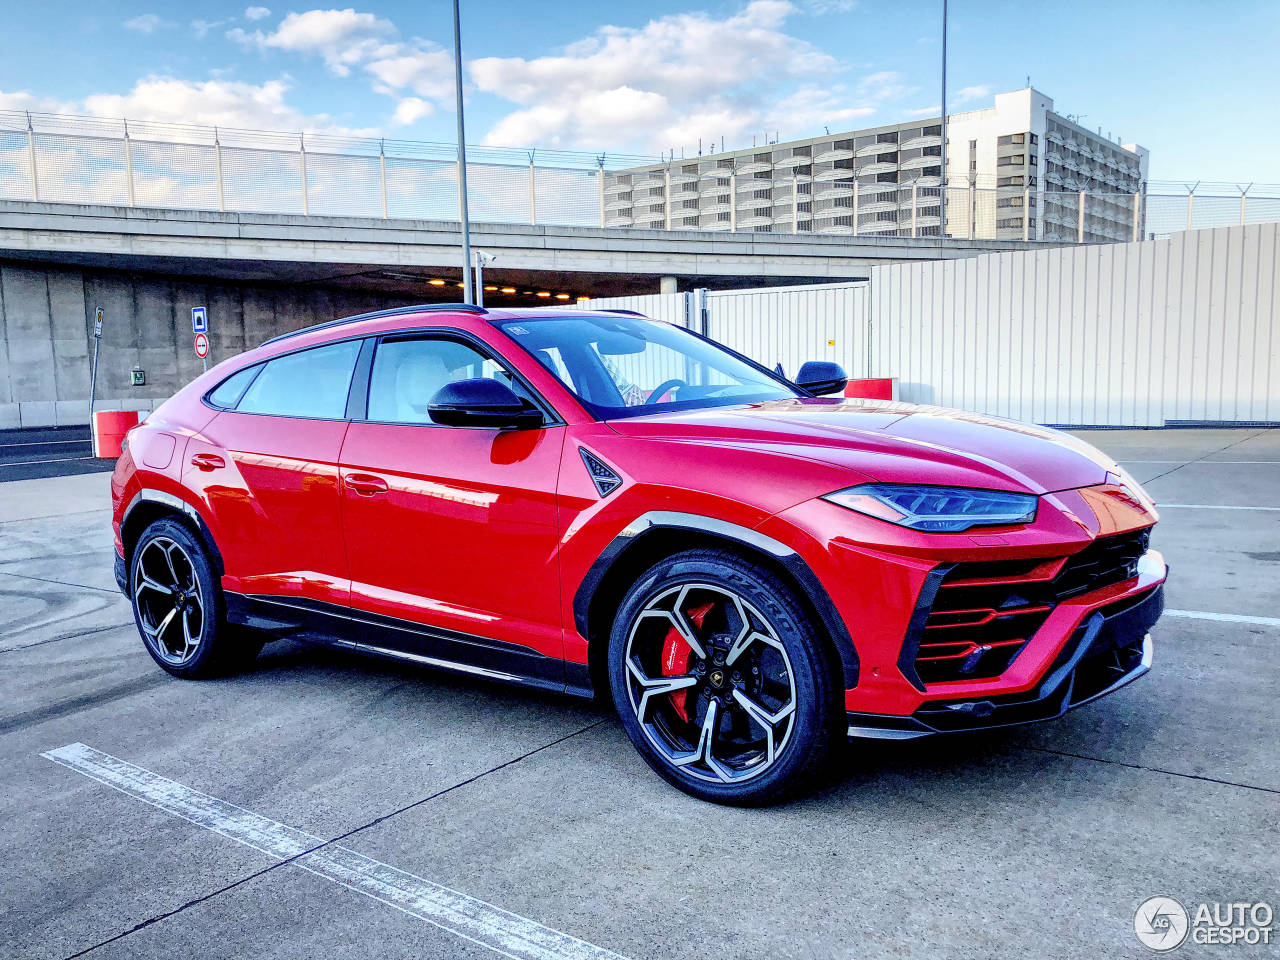 Rosso Mars Lamborghini Urus Looks Like A Plus Sized Supercar In Frankfurt Autoevolution